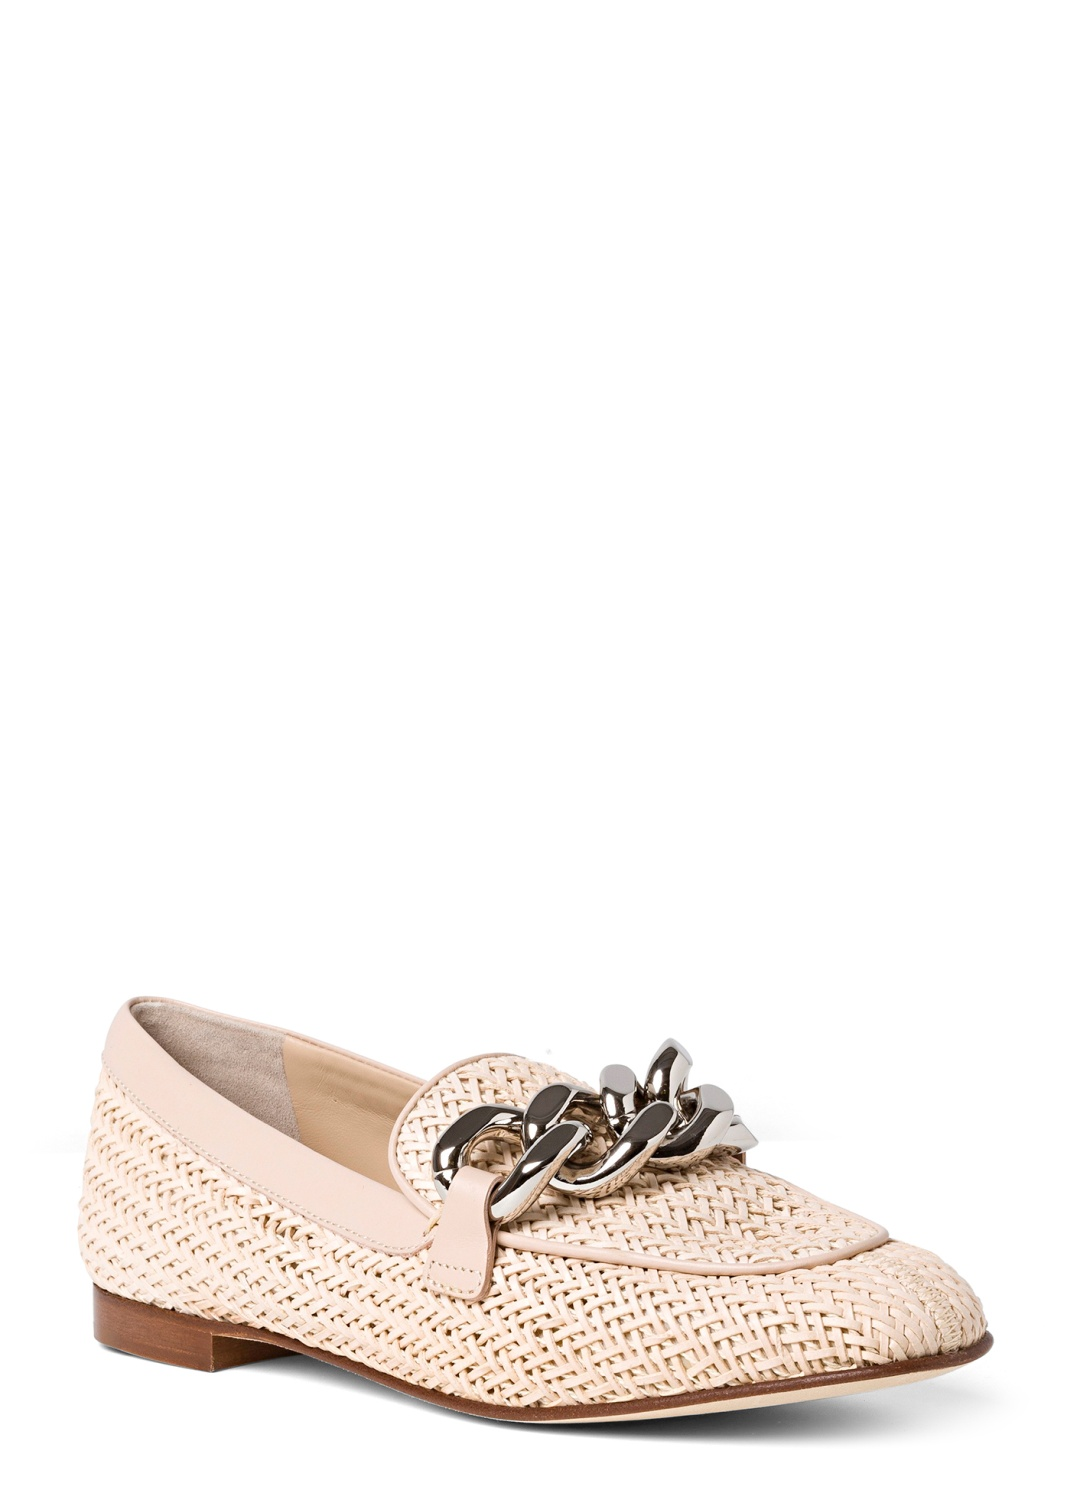 Woven Loafer Chain image number 1